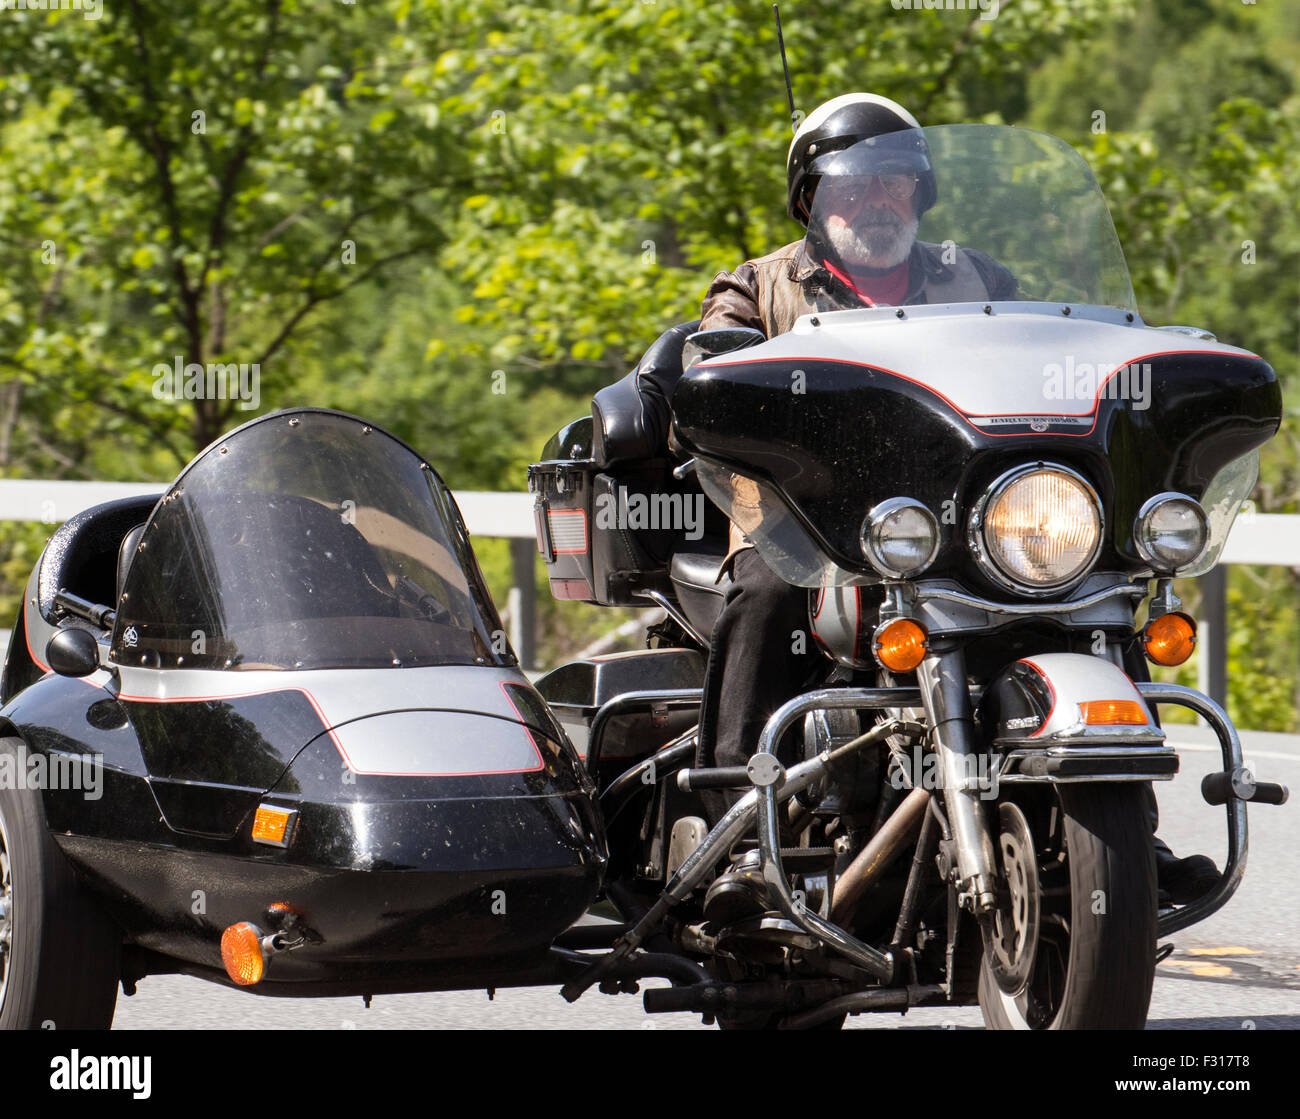 Man on a Harley Davidson Motorcycle motorbike with matching sidecar side car. - Stock Image